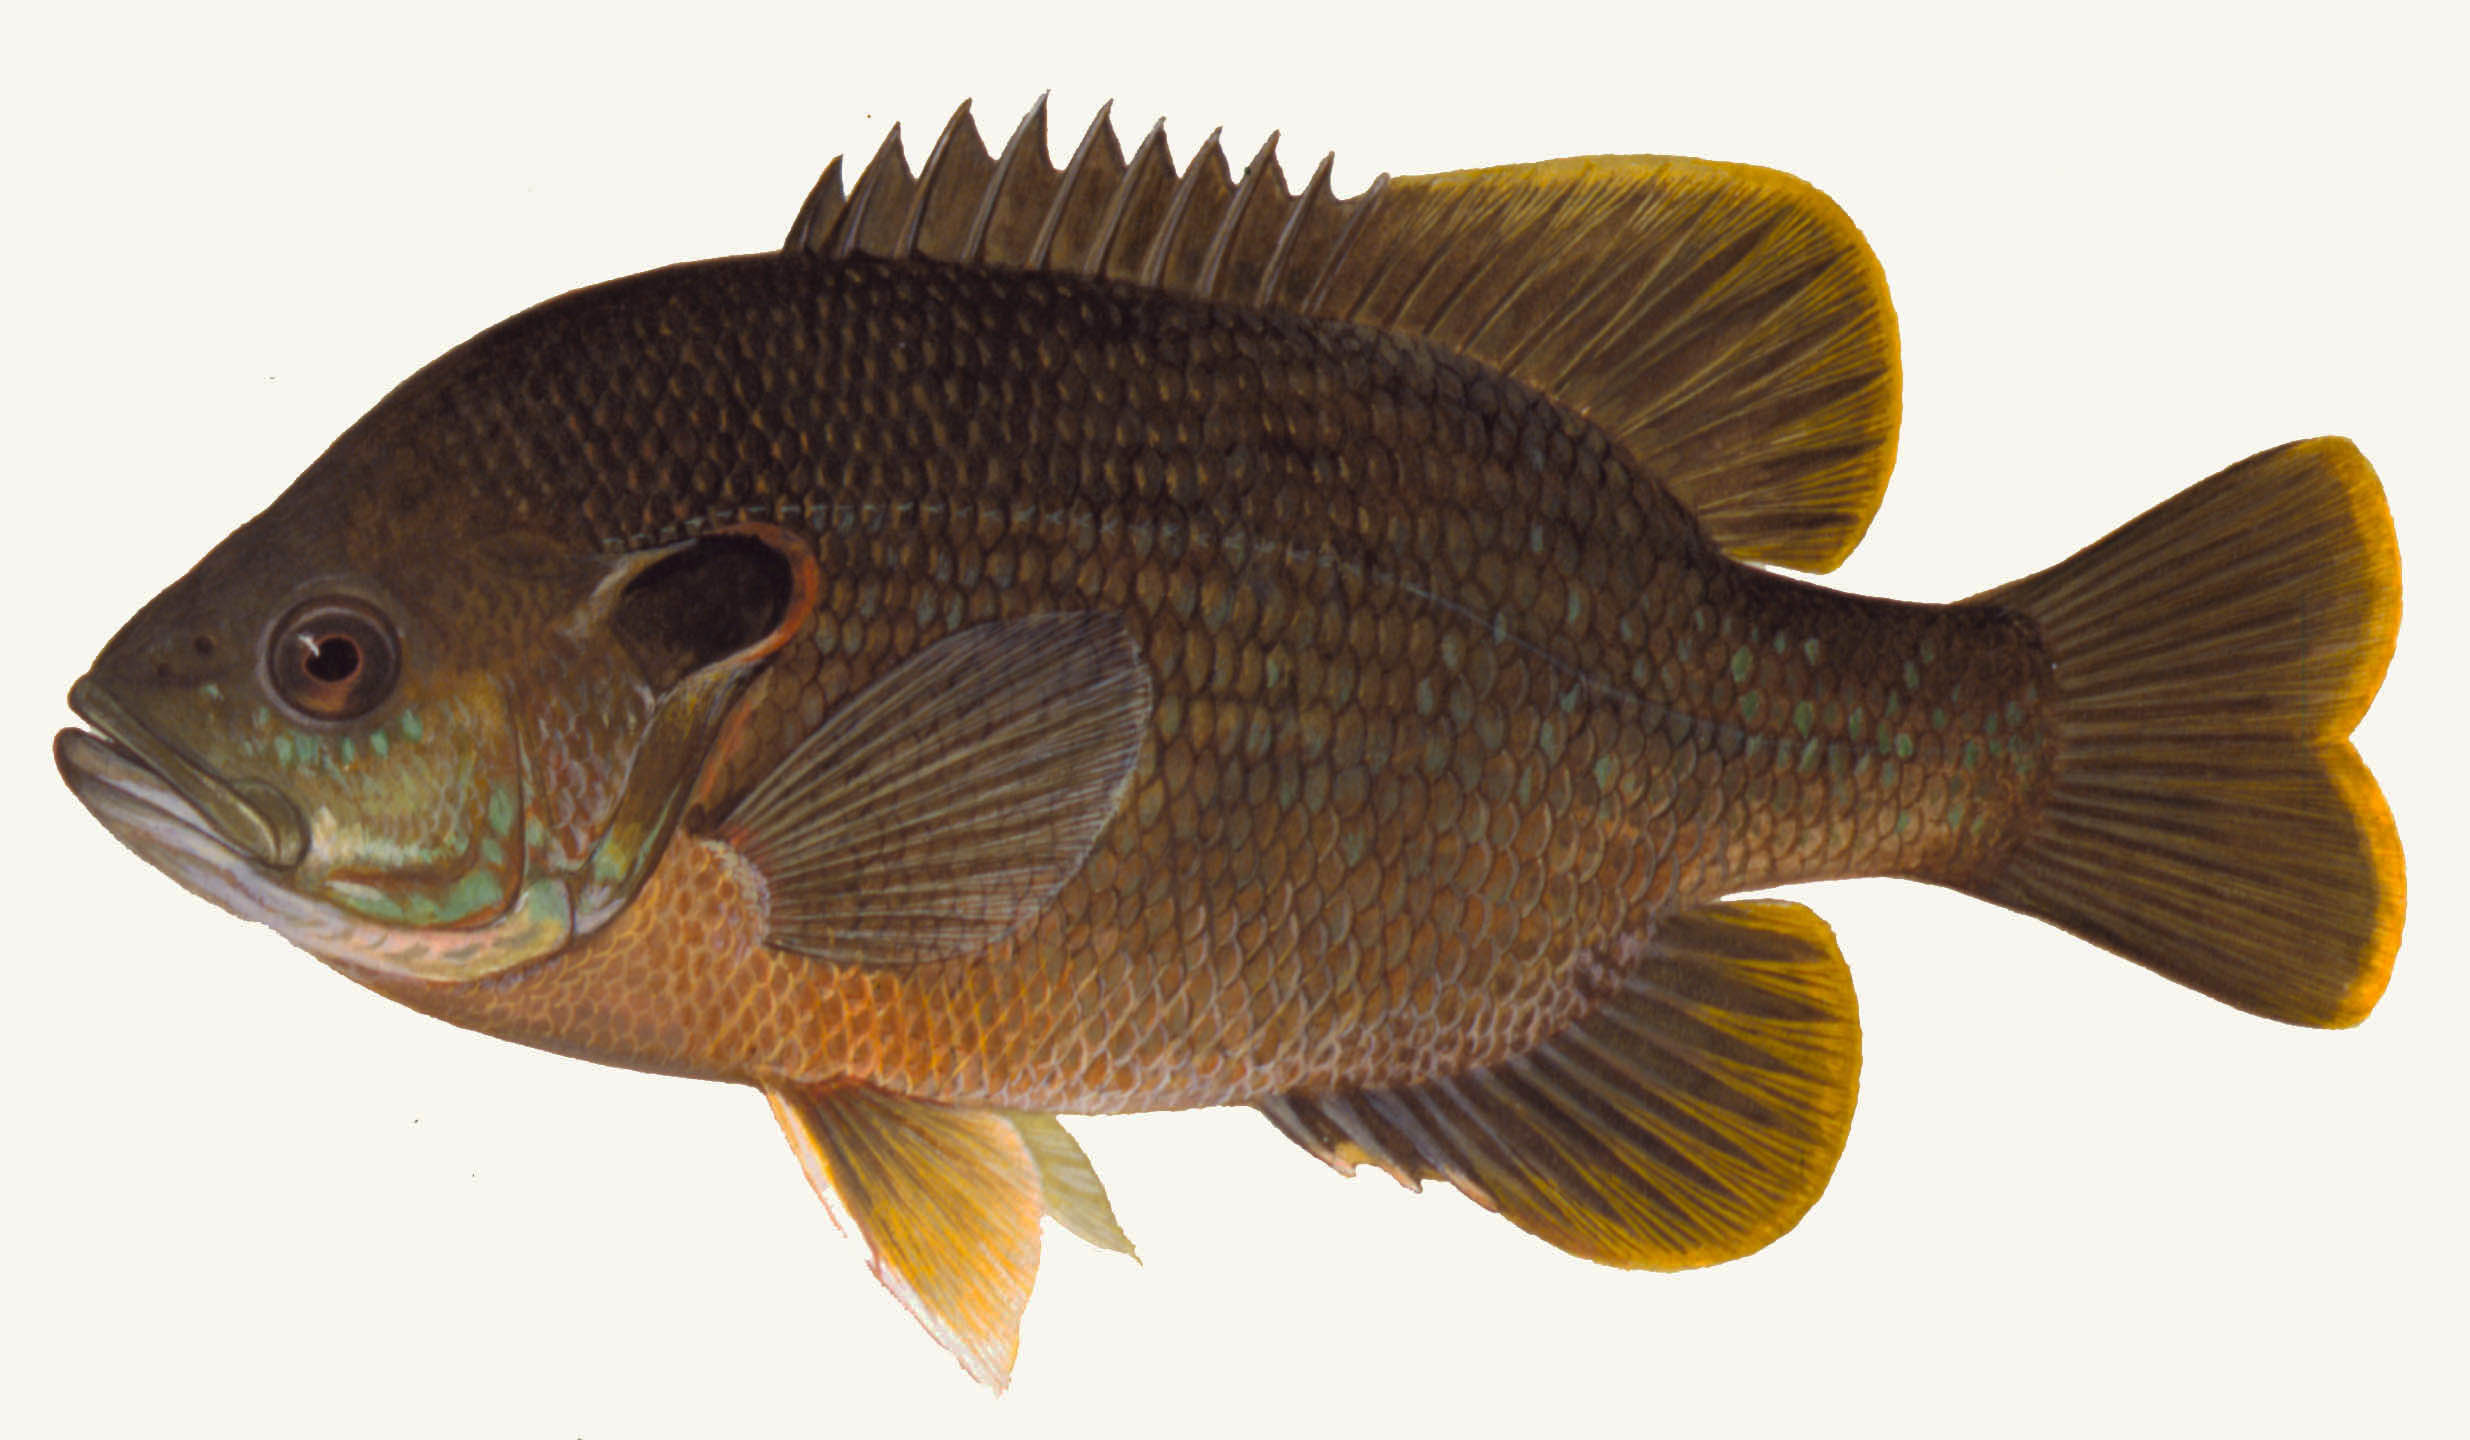 Green Sunfish, illustration by Maynard Reece, from Iowa Fish and Fishing.